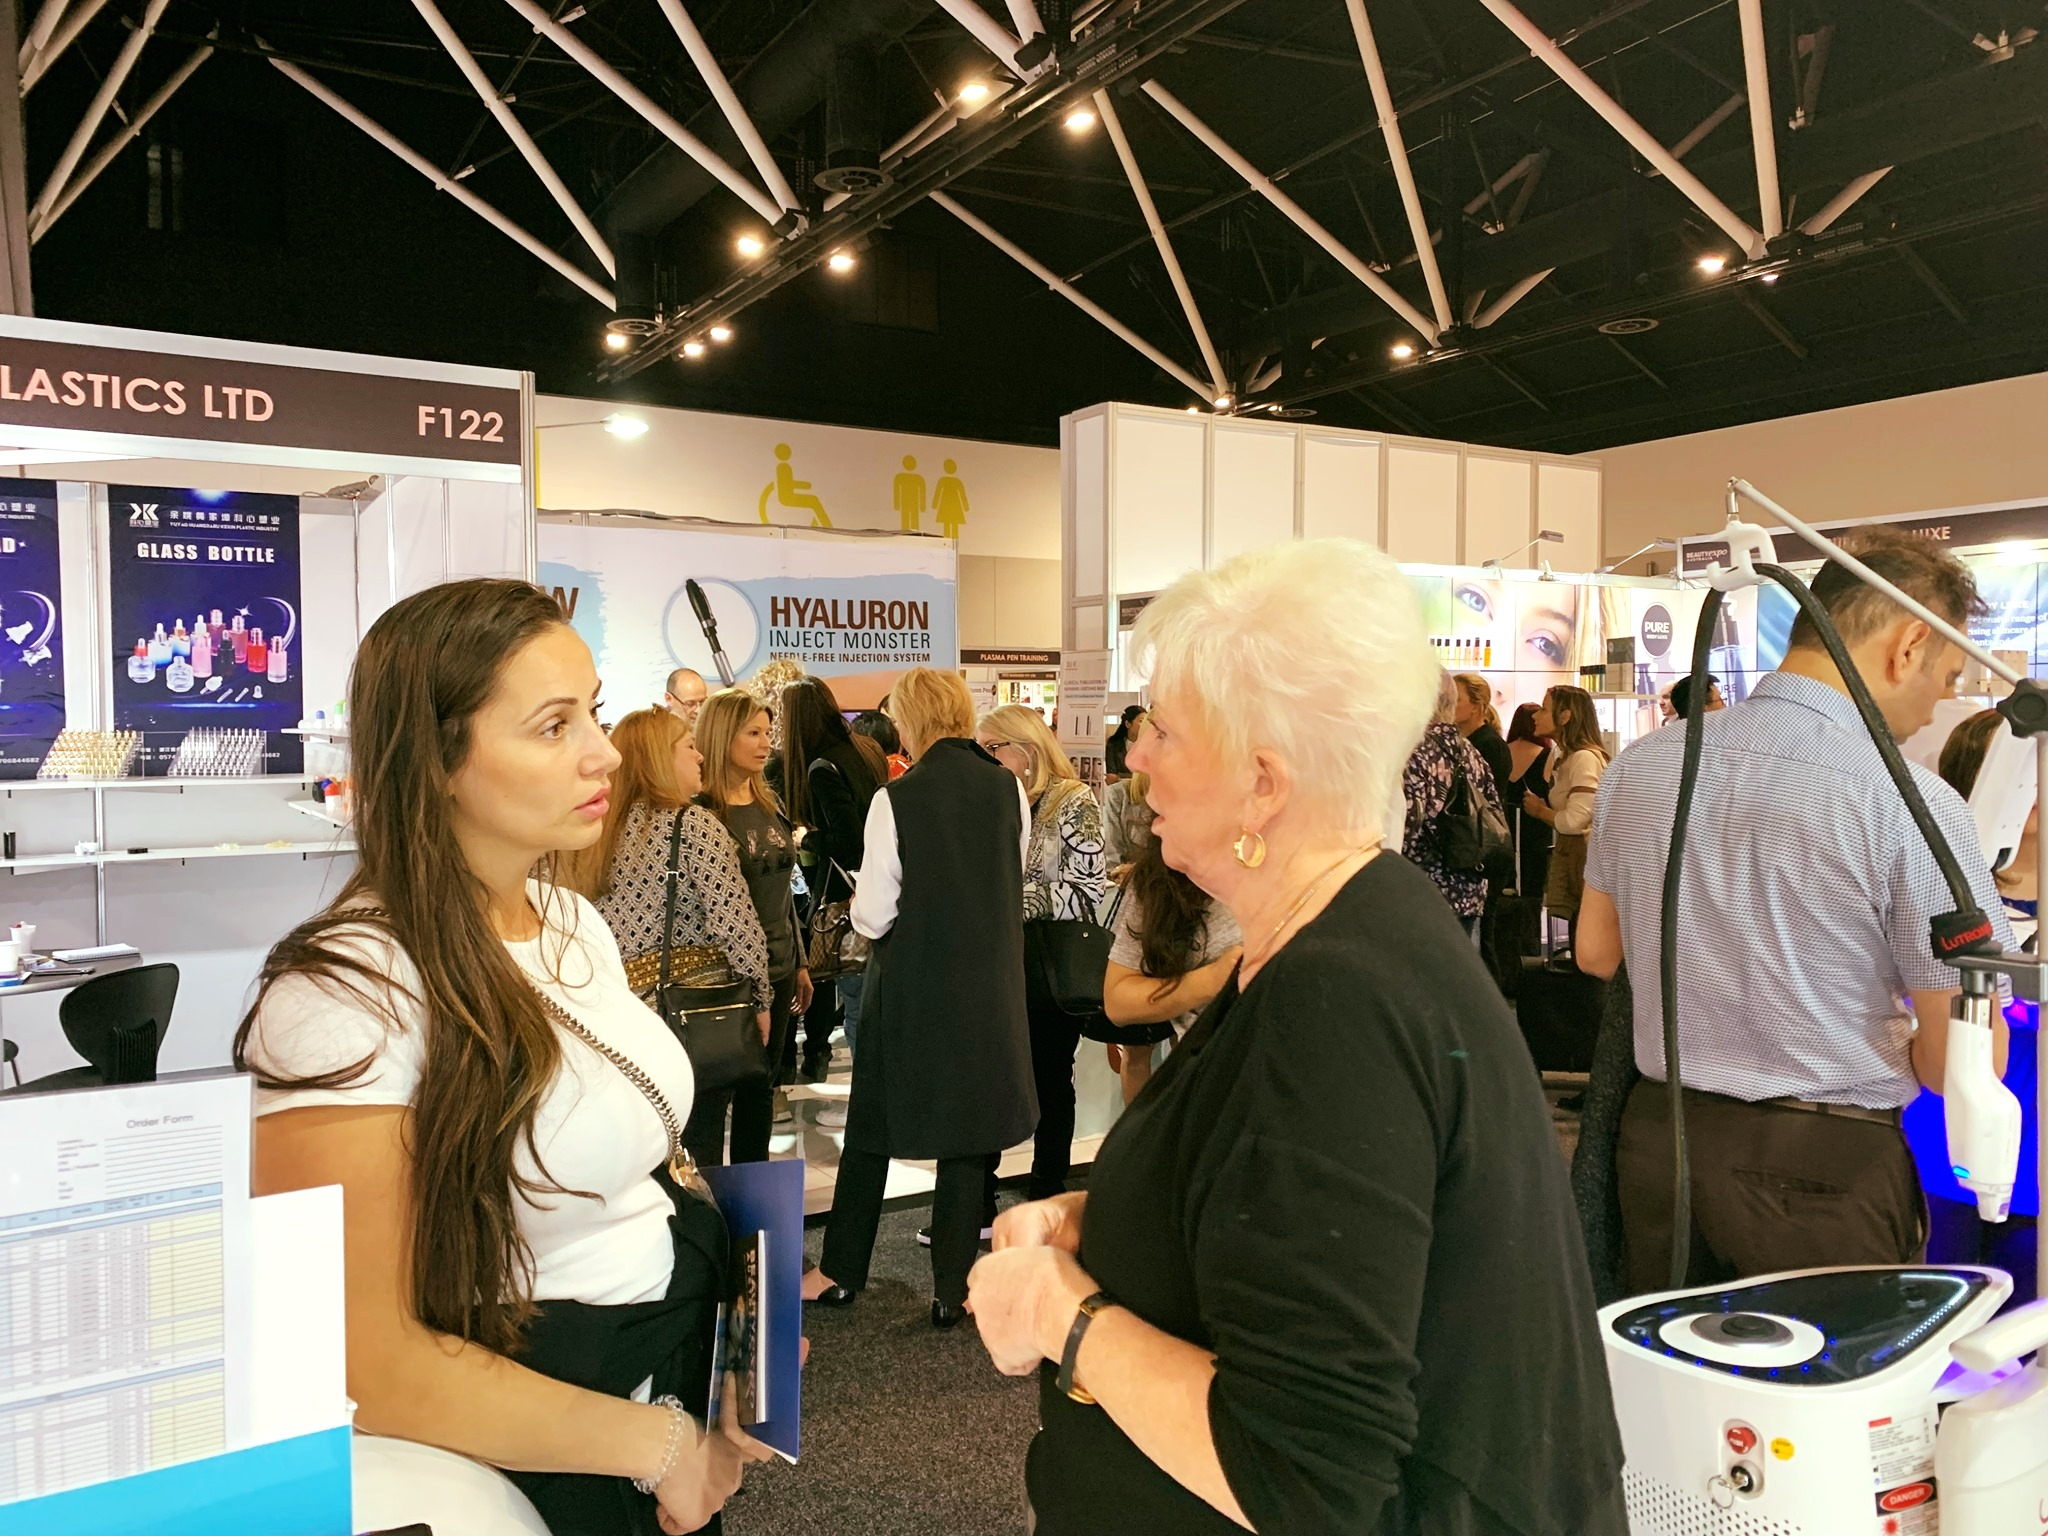 Our team were hard at work over the weekend at Beauty Expo Australia. It was g...